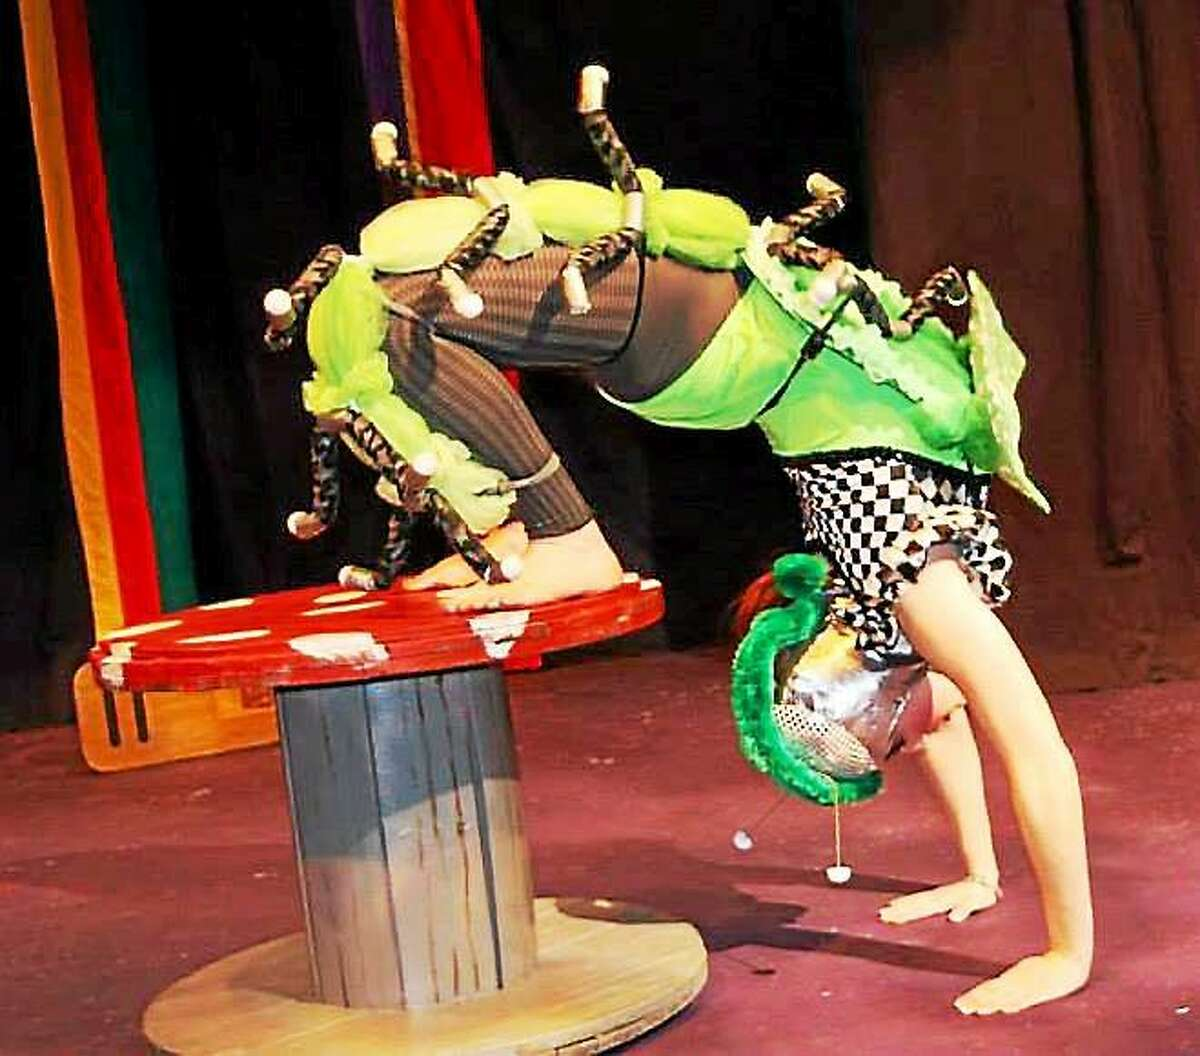 Submitted photo - Circophony Performers of all kinds between the ages of 12 and 18 are encouraged to audition for Circophony Youth Circus Company. Auditions for the 2014-15 season will be held Tuesday, Sept. 9, 6:30 ñ 8:30 p.m. at Oddfellows Playhouse, 128 Washington Street in Middletown. Above, a performer on stage.